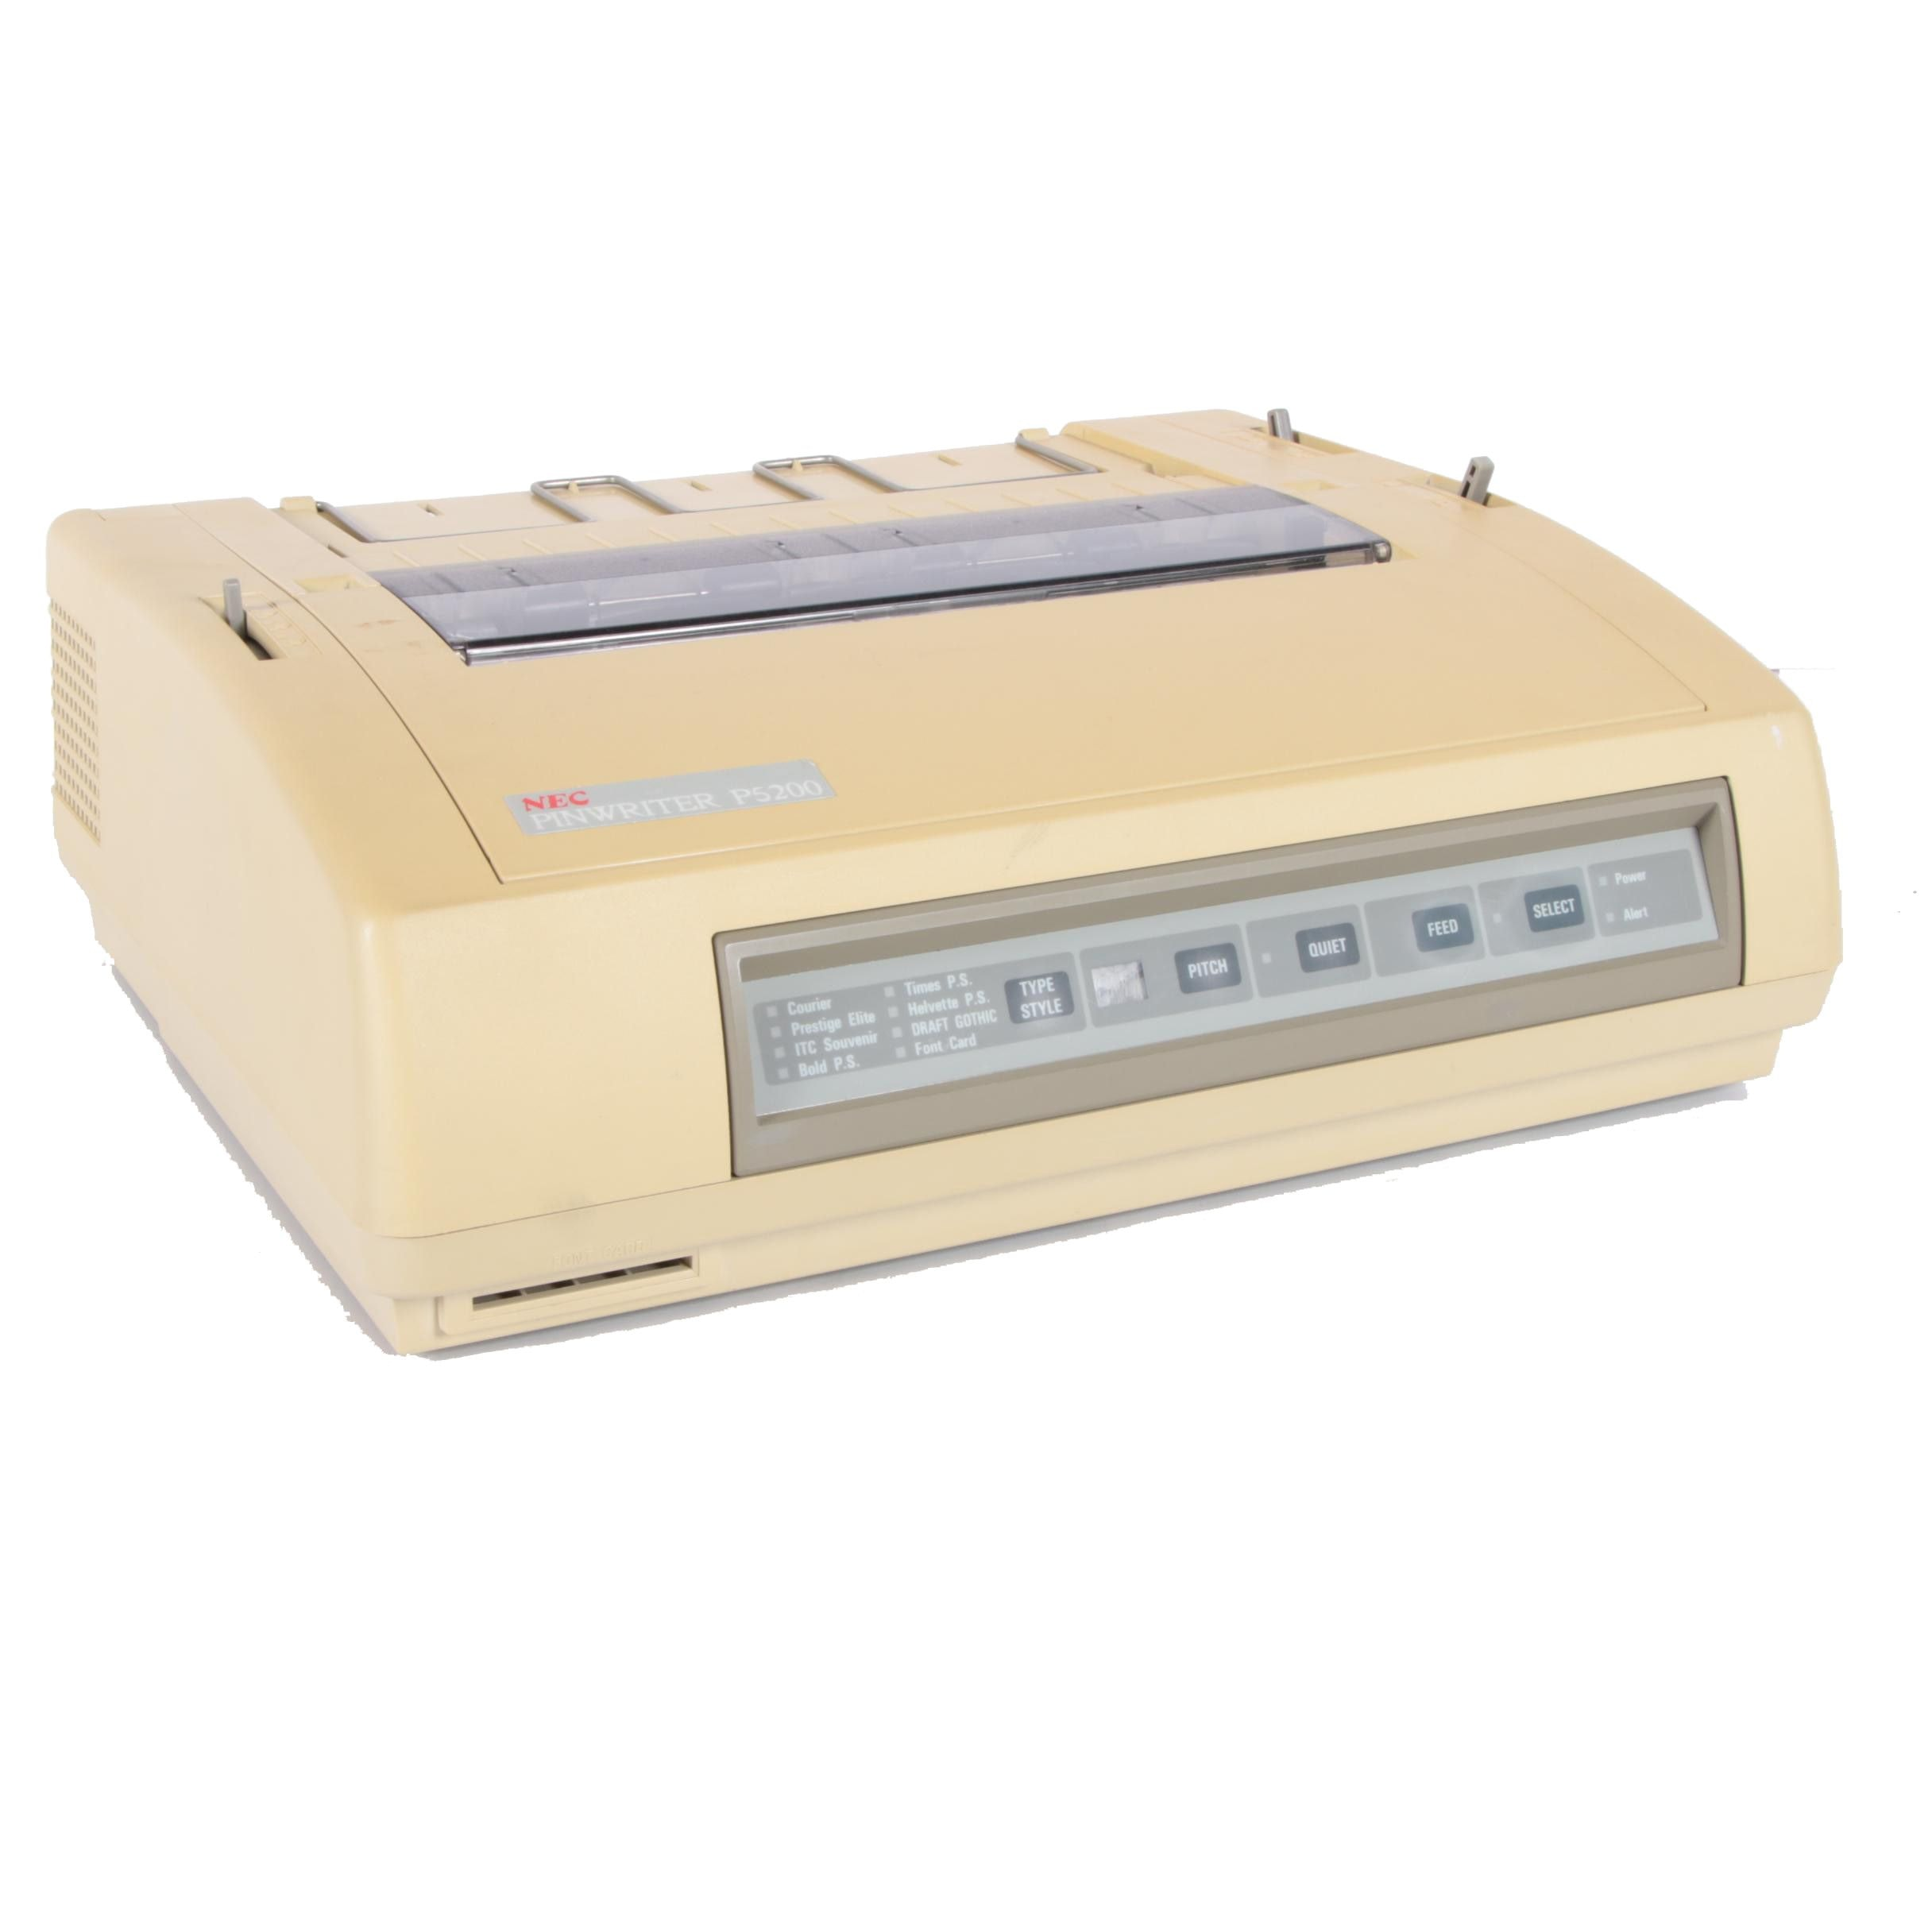 1980s NEC Pinwriter P5200 24-Wire Dot Matrix Printer